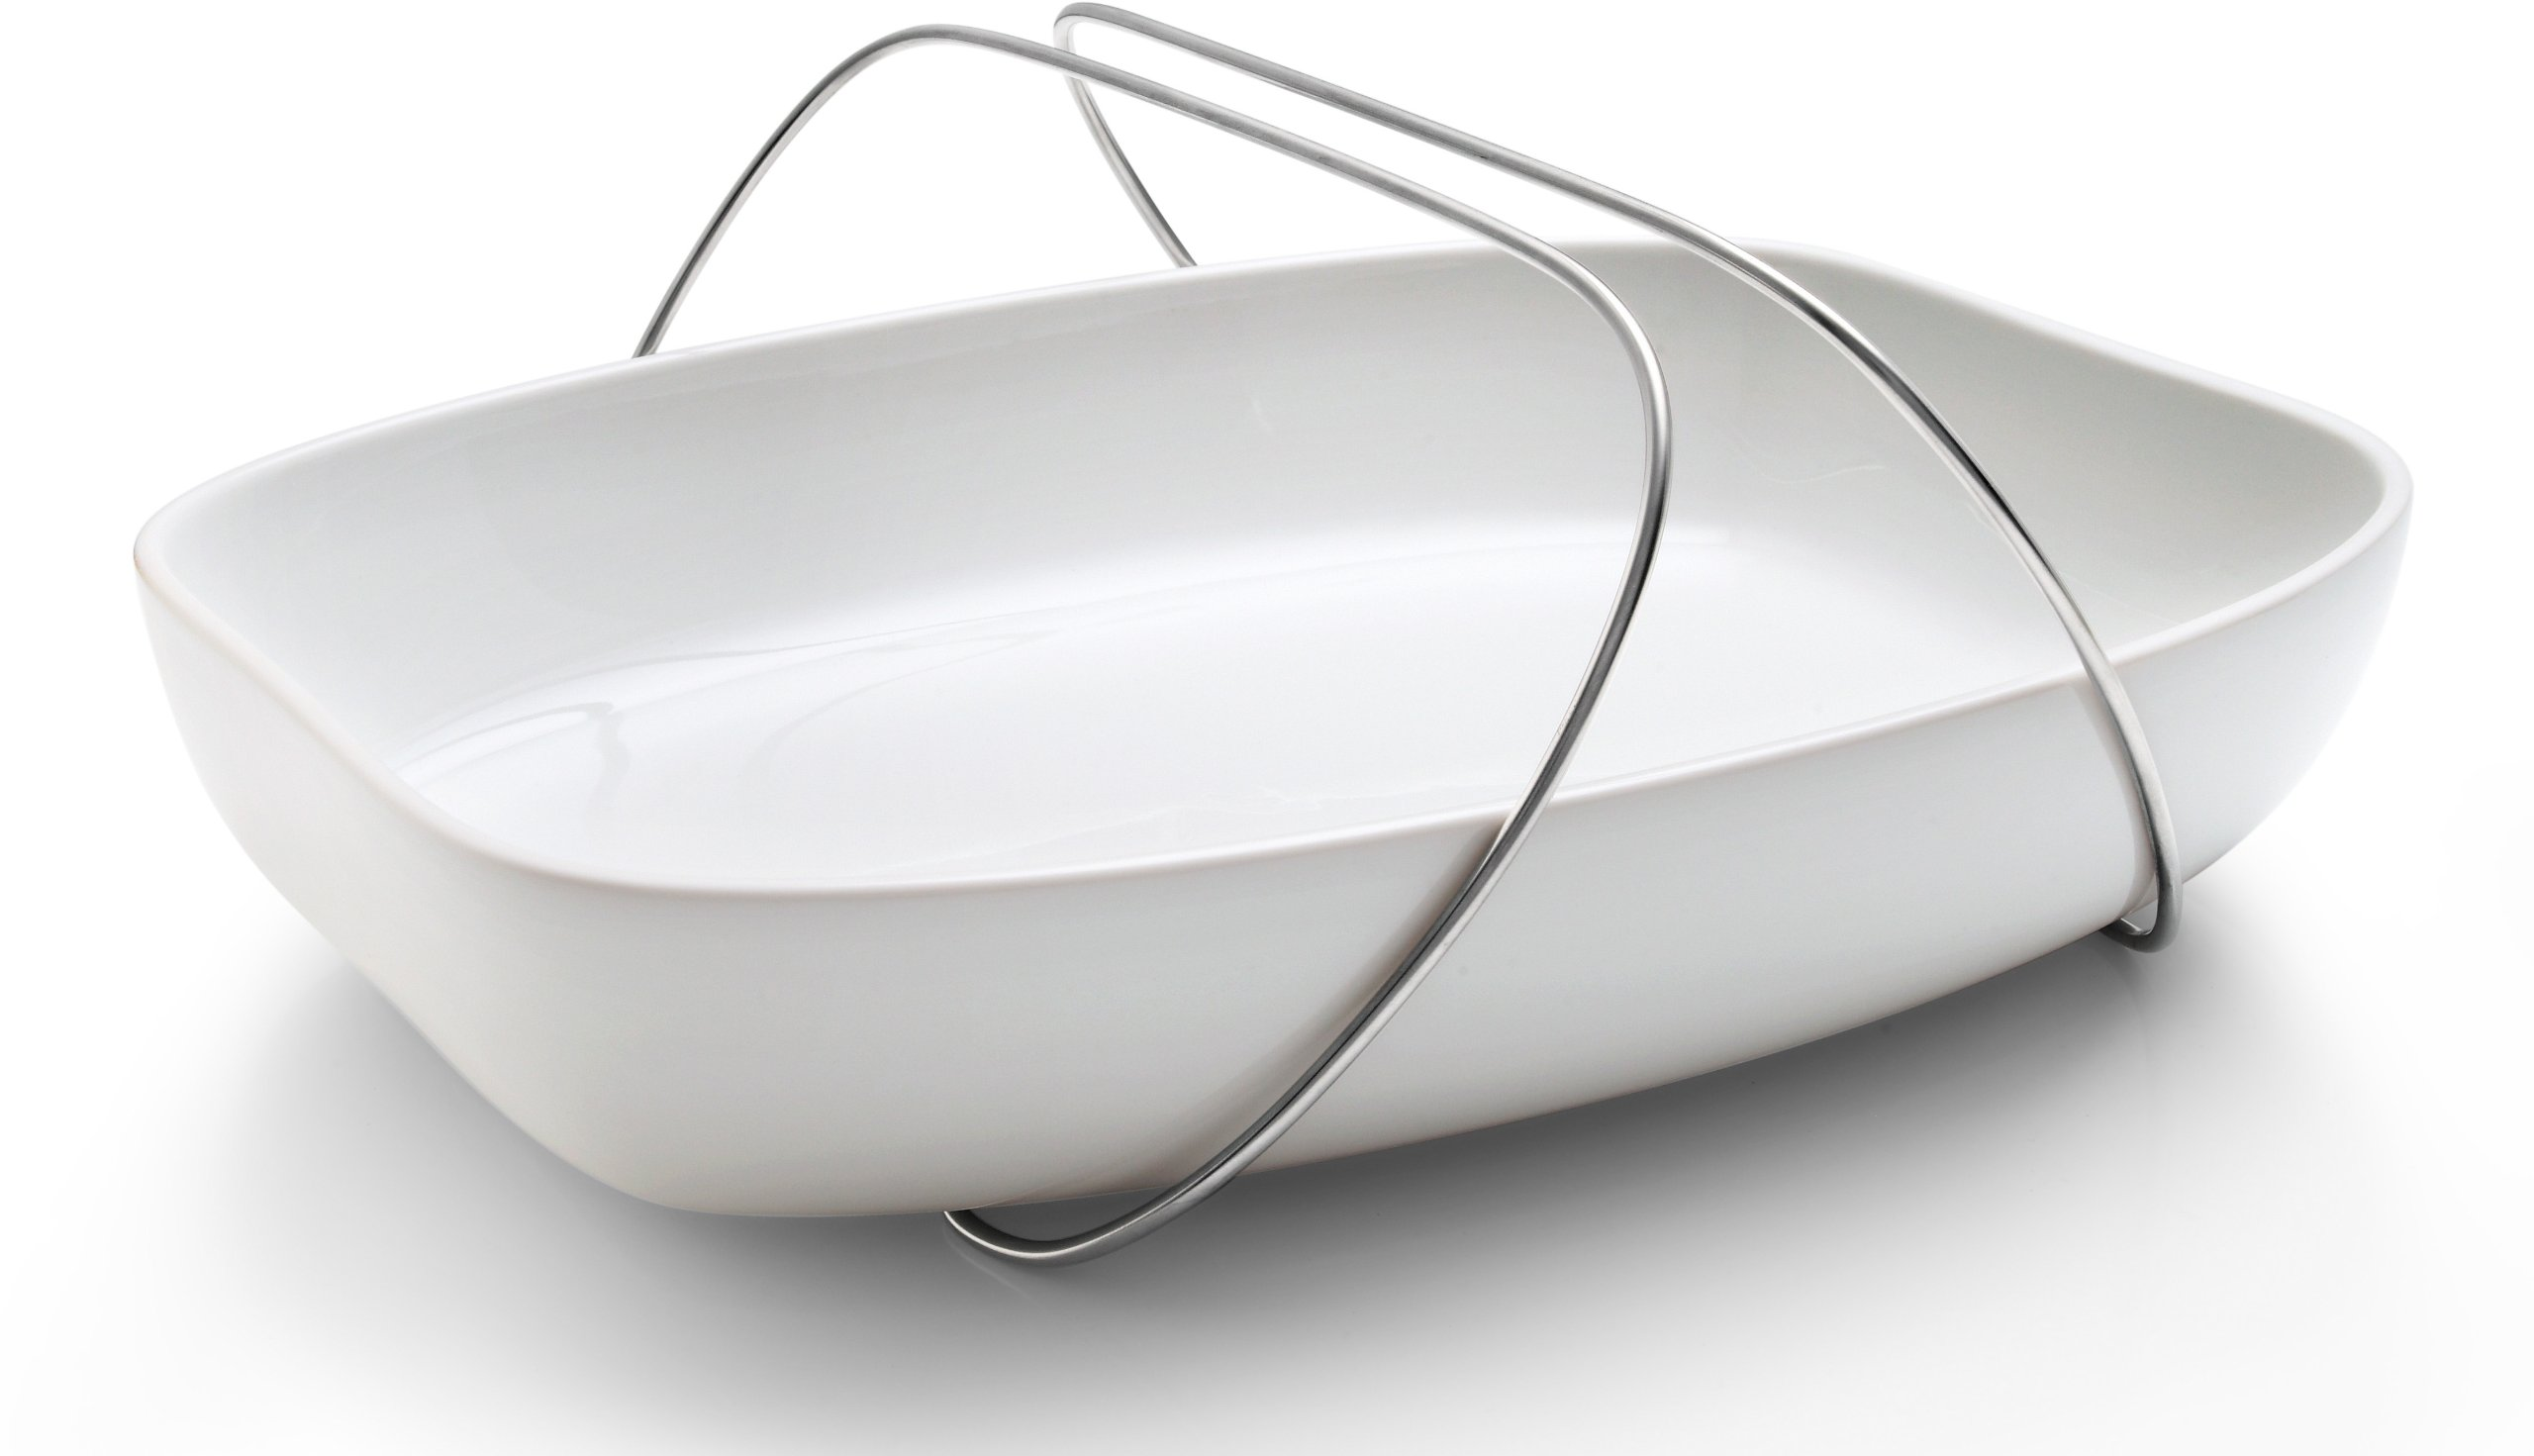 Eva Solo Dish with Handle, Small, 26 by 20 by 6cm, White